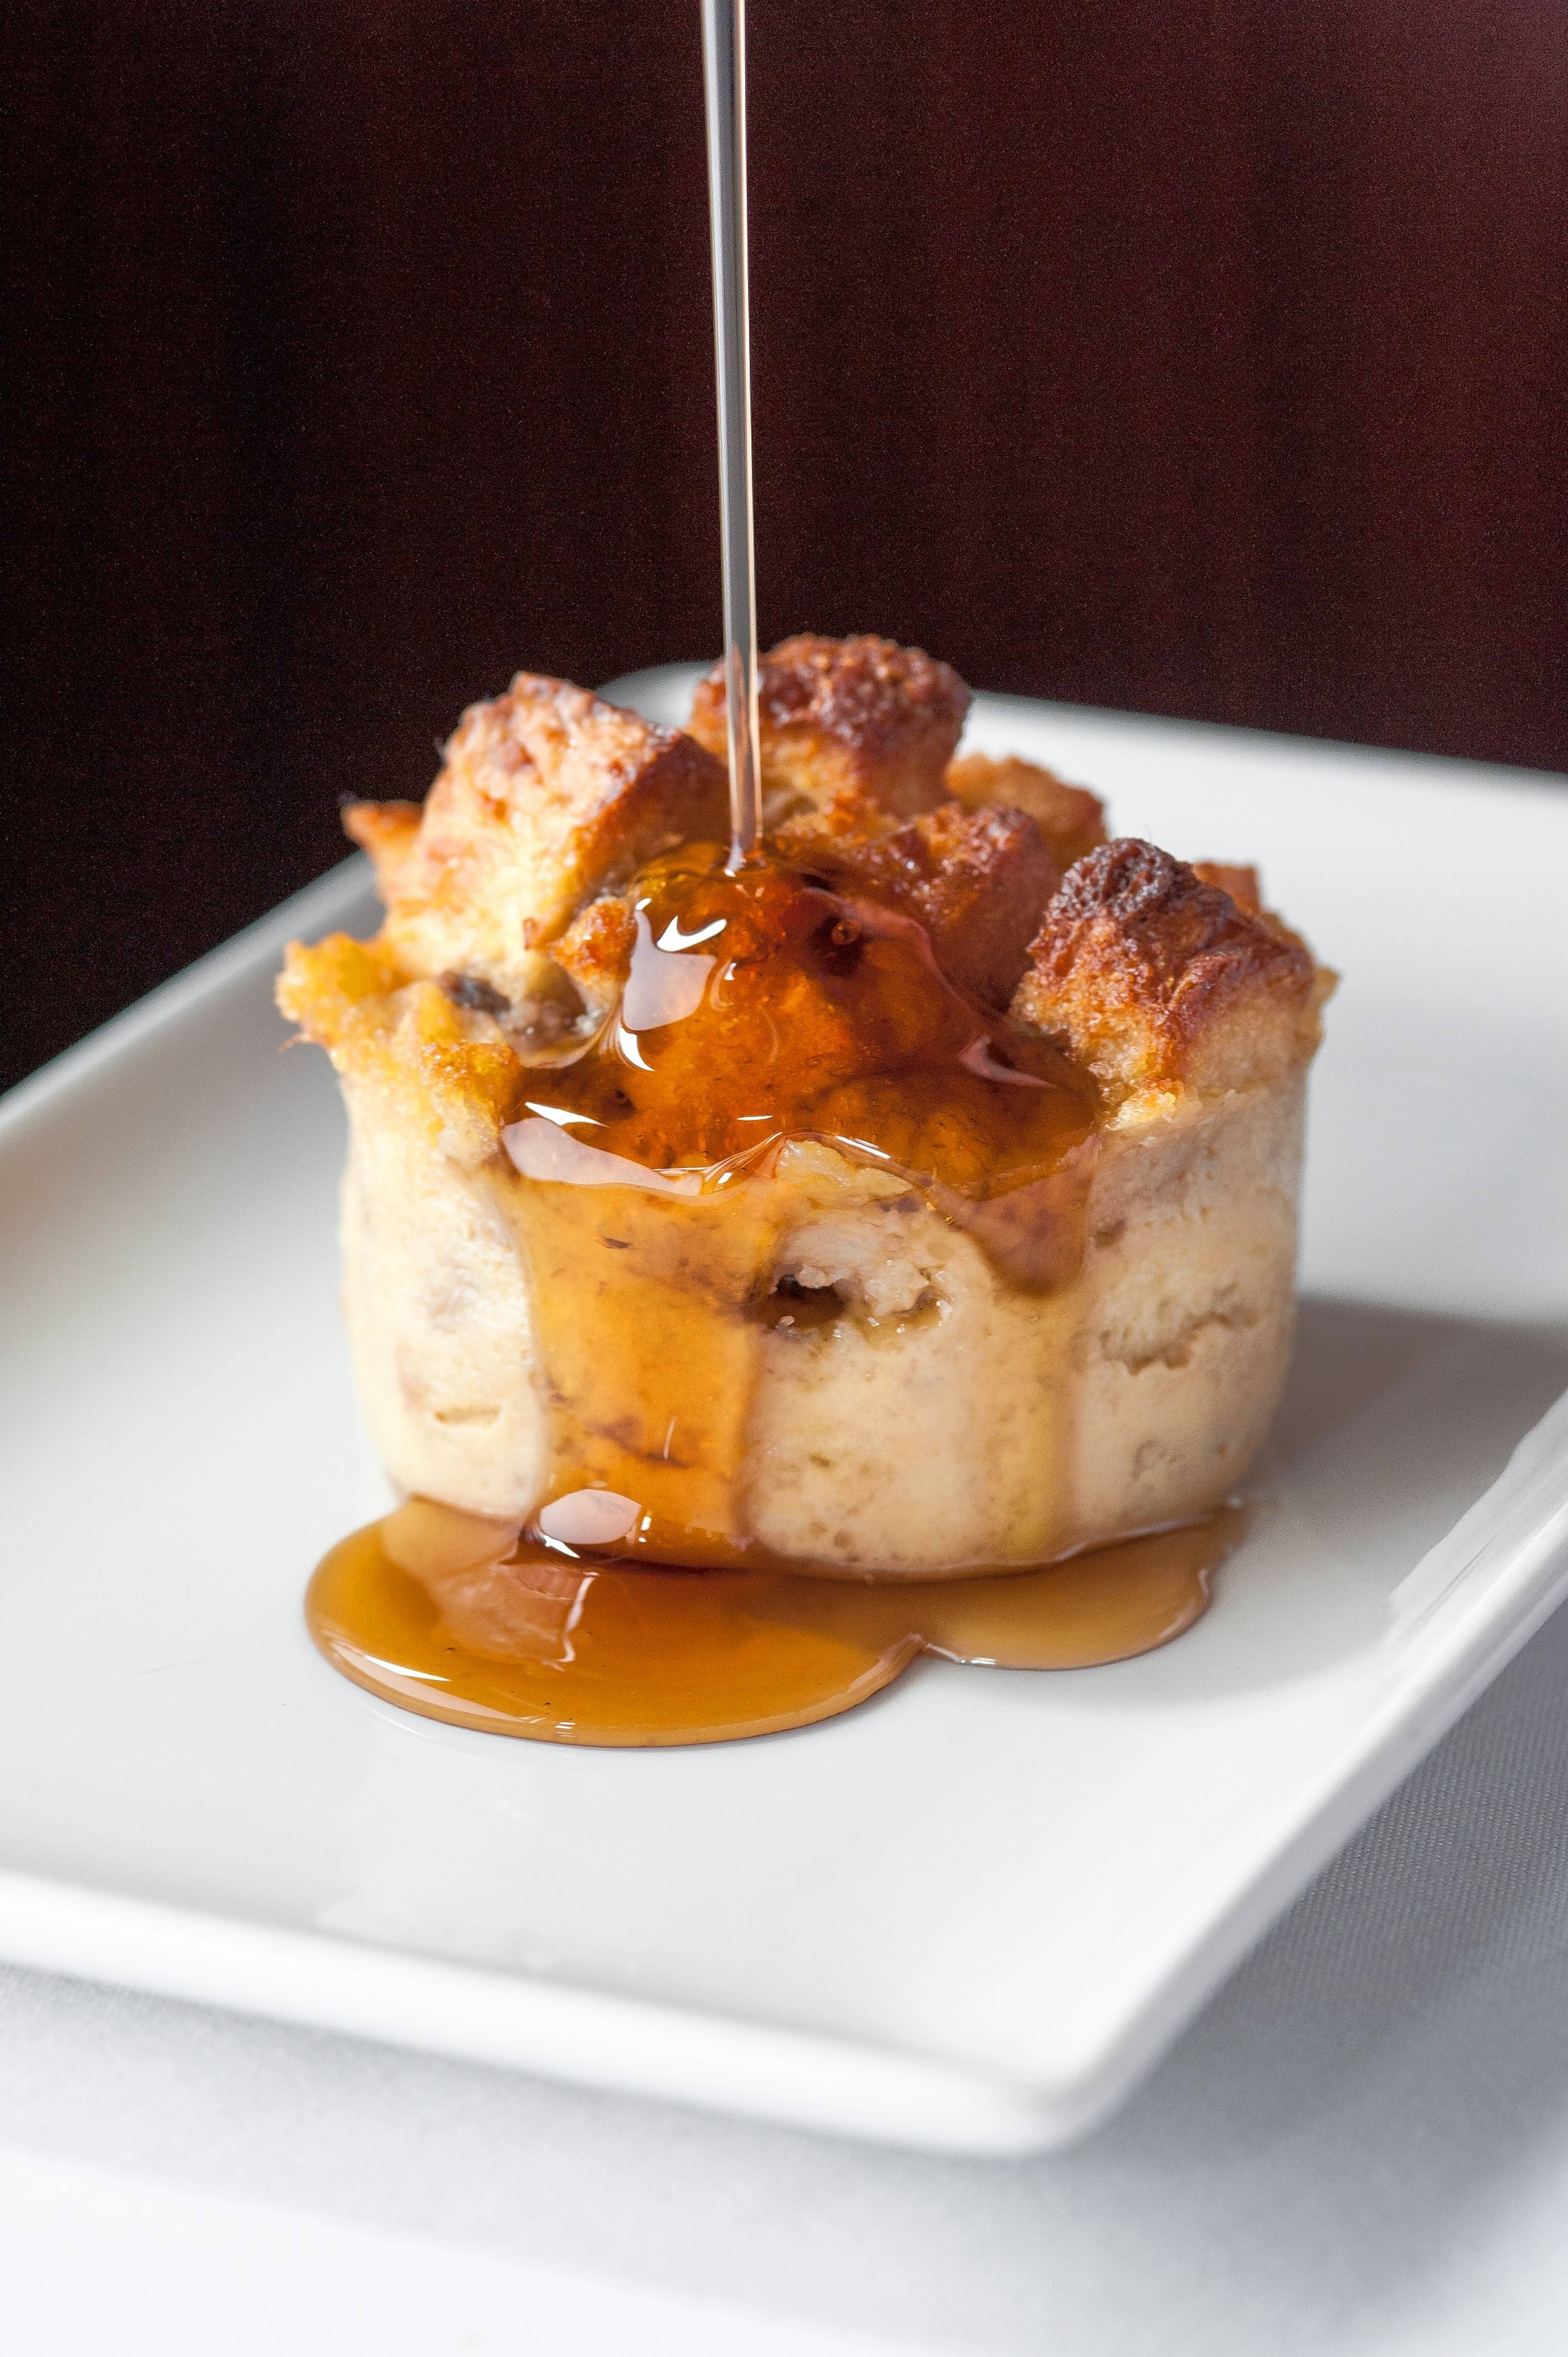 End your Easter meal at Sullivan's Steakhouse with bananas Foster bread pudding.